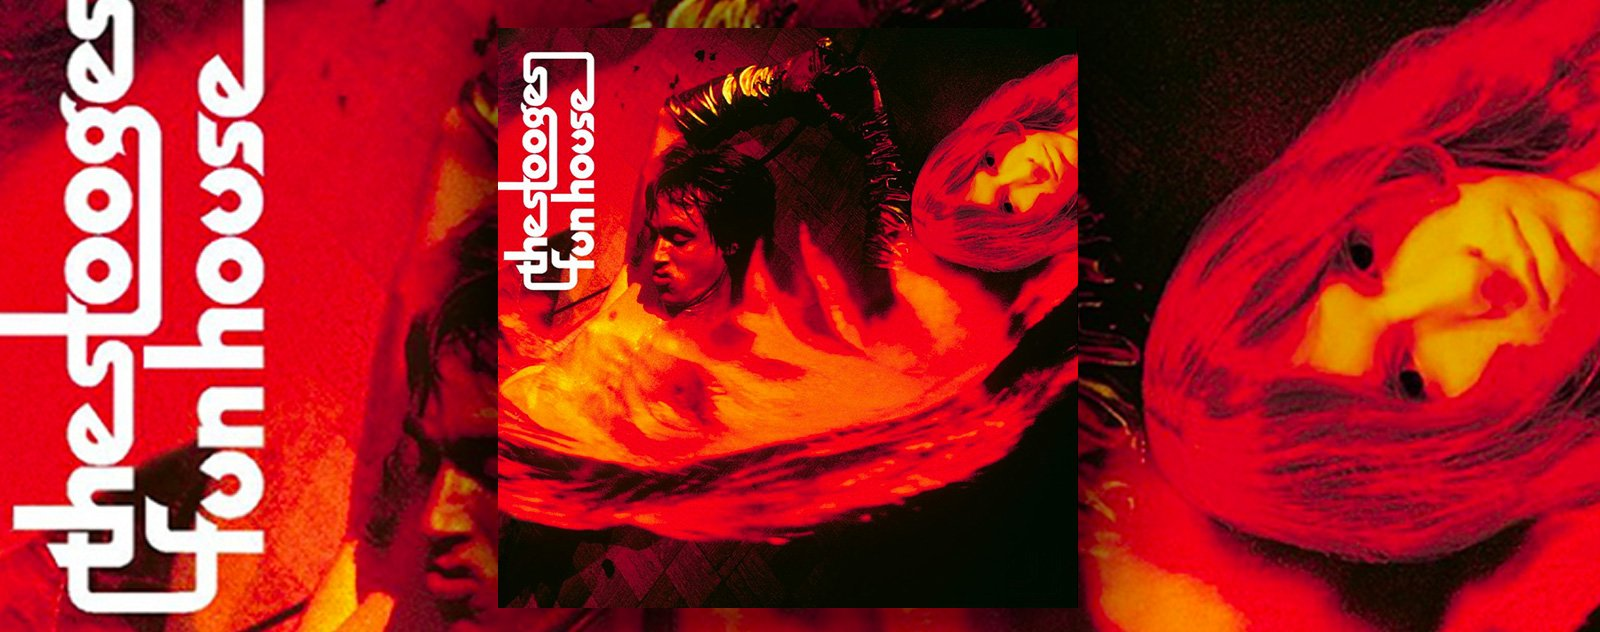 The Stooges Funhouse